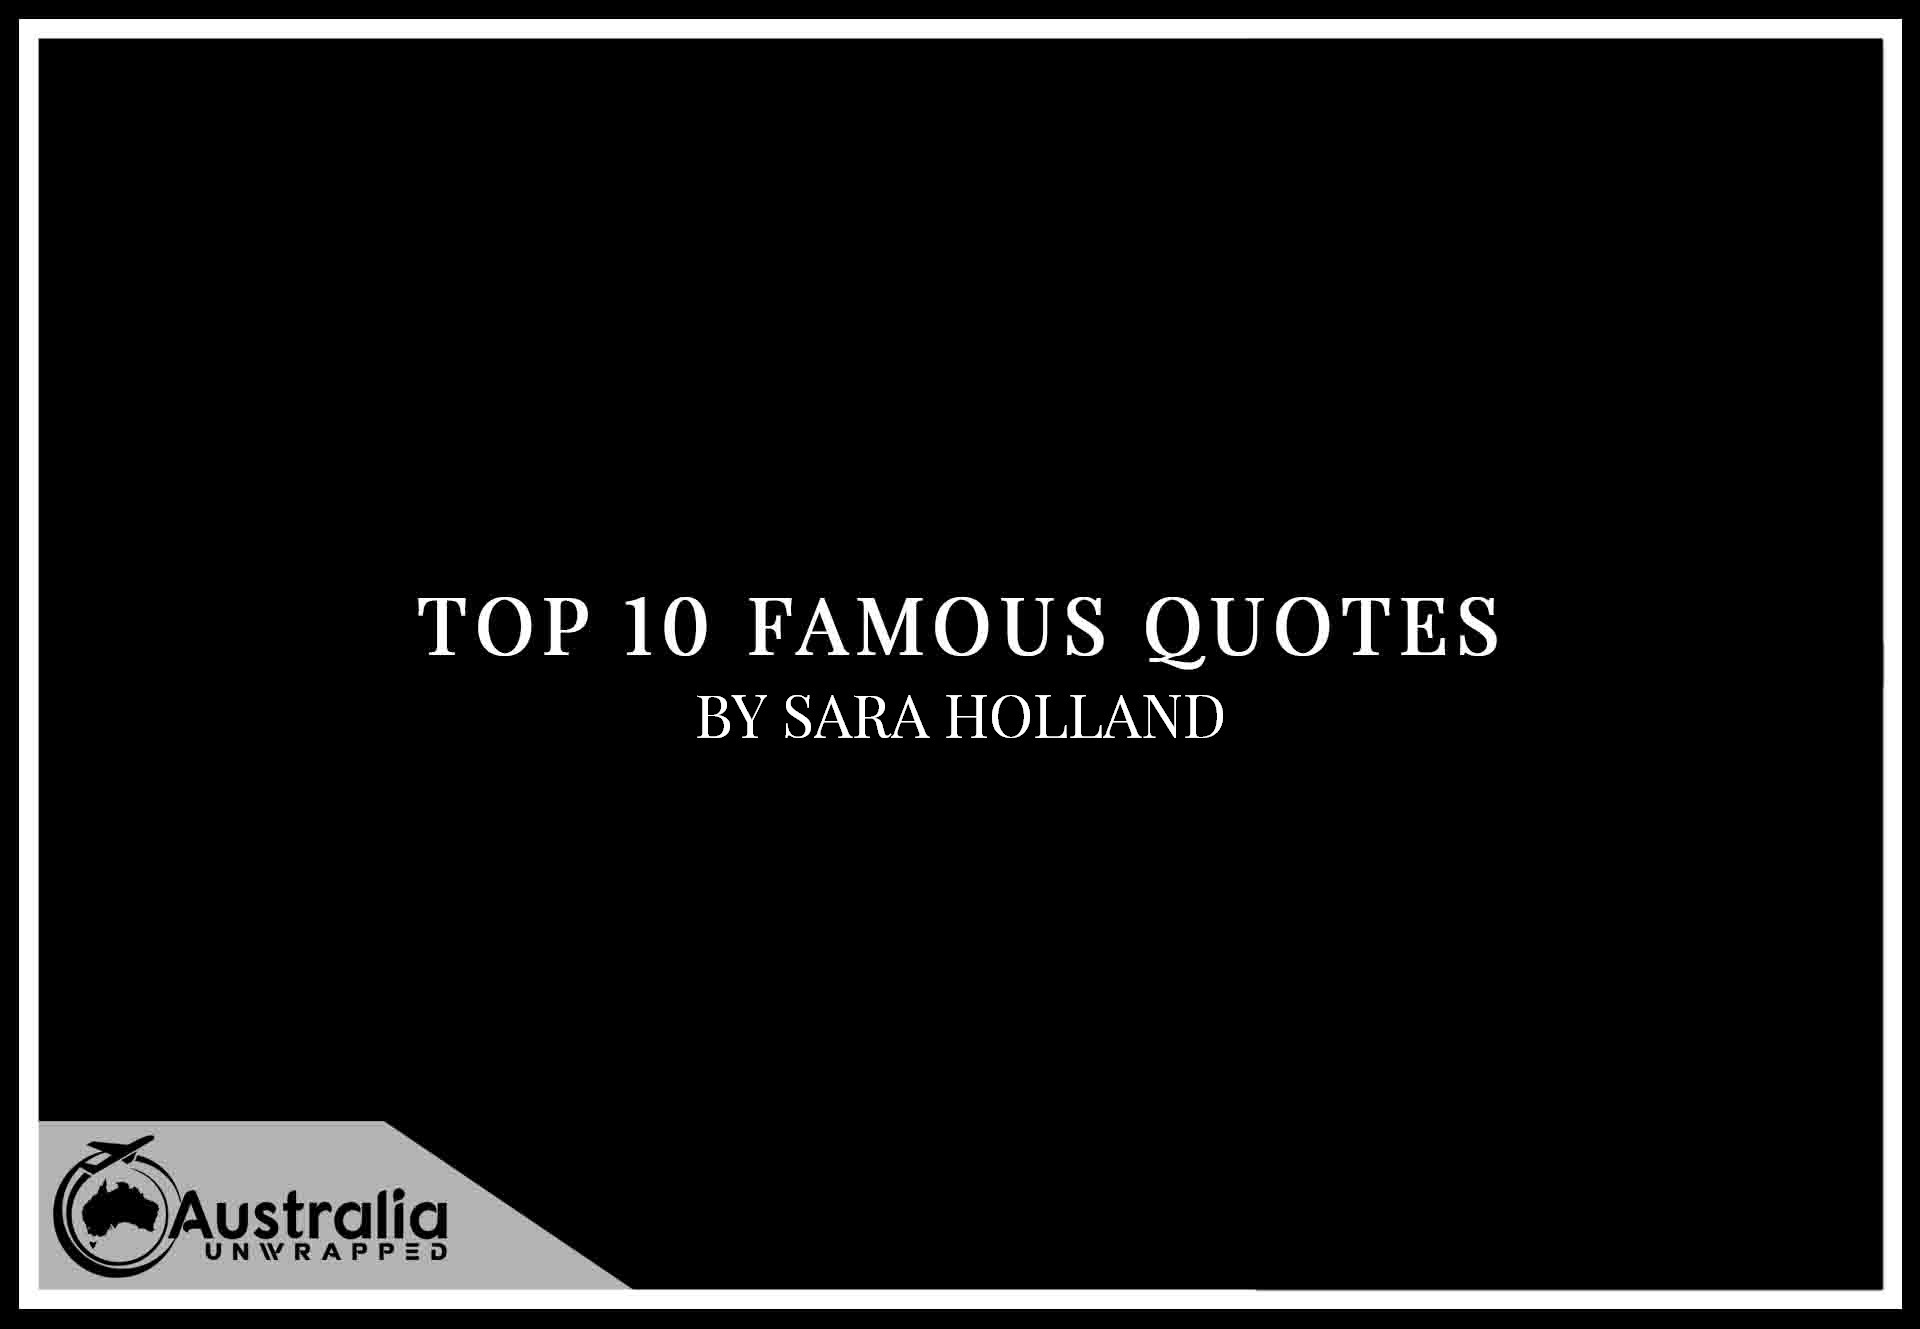 Top 10 Famous Quotes by Author Sara Holland